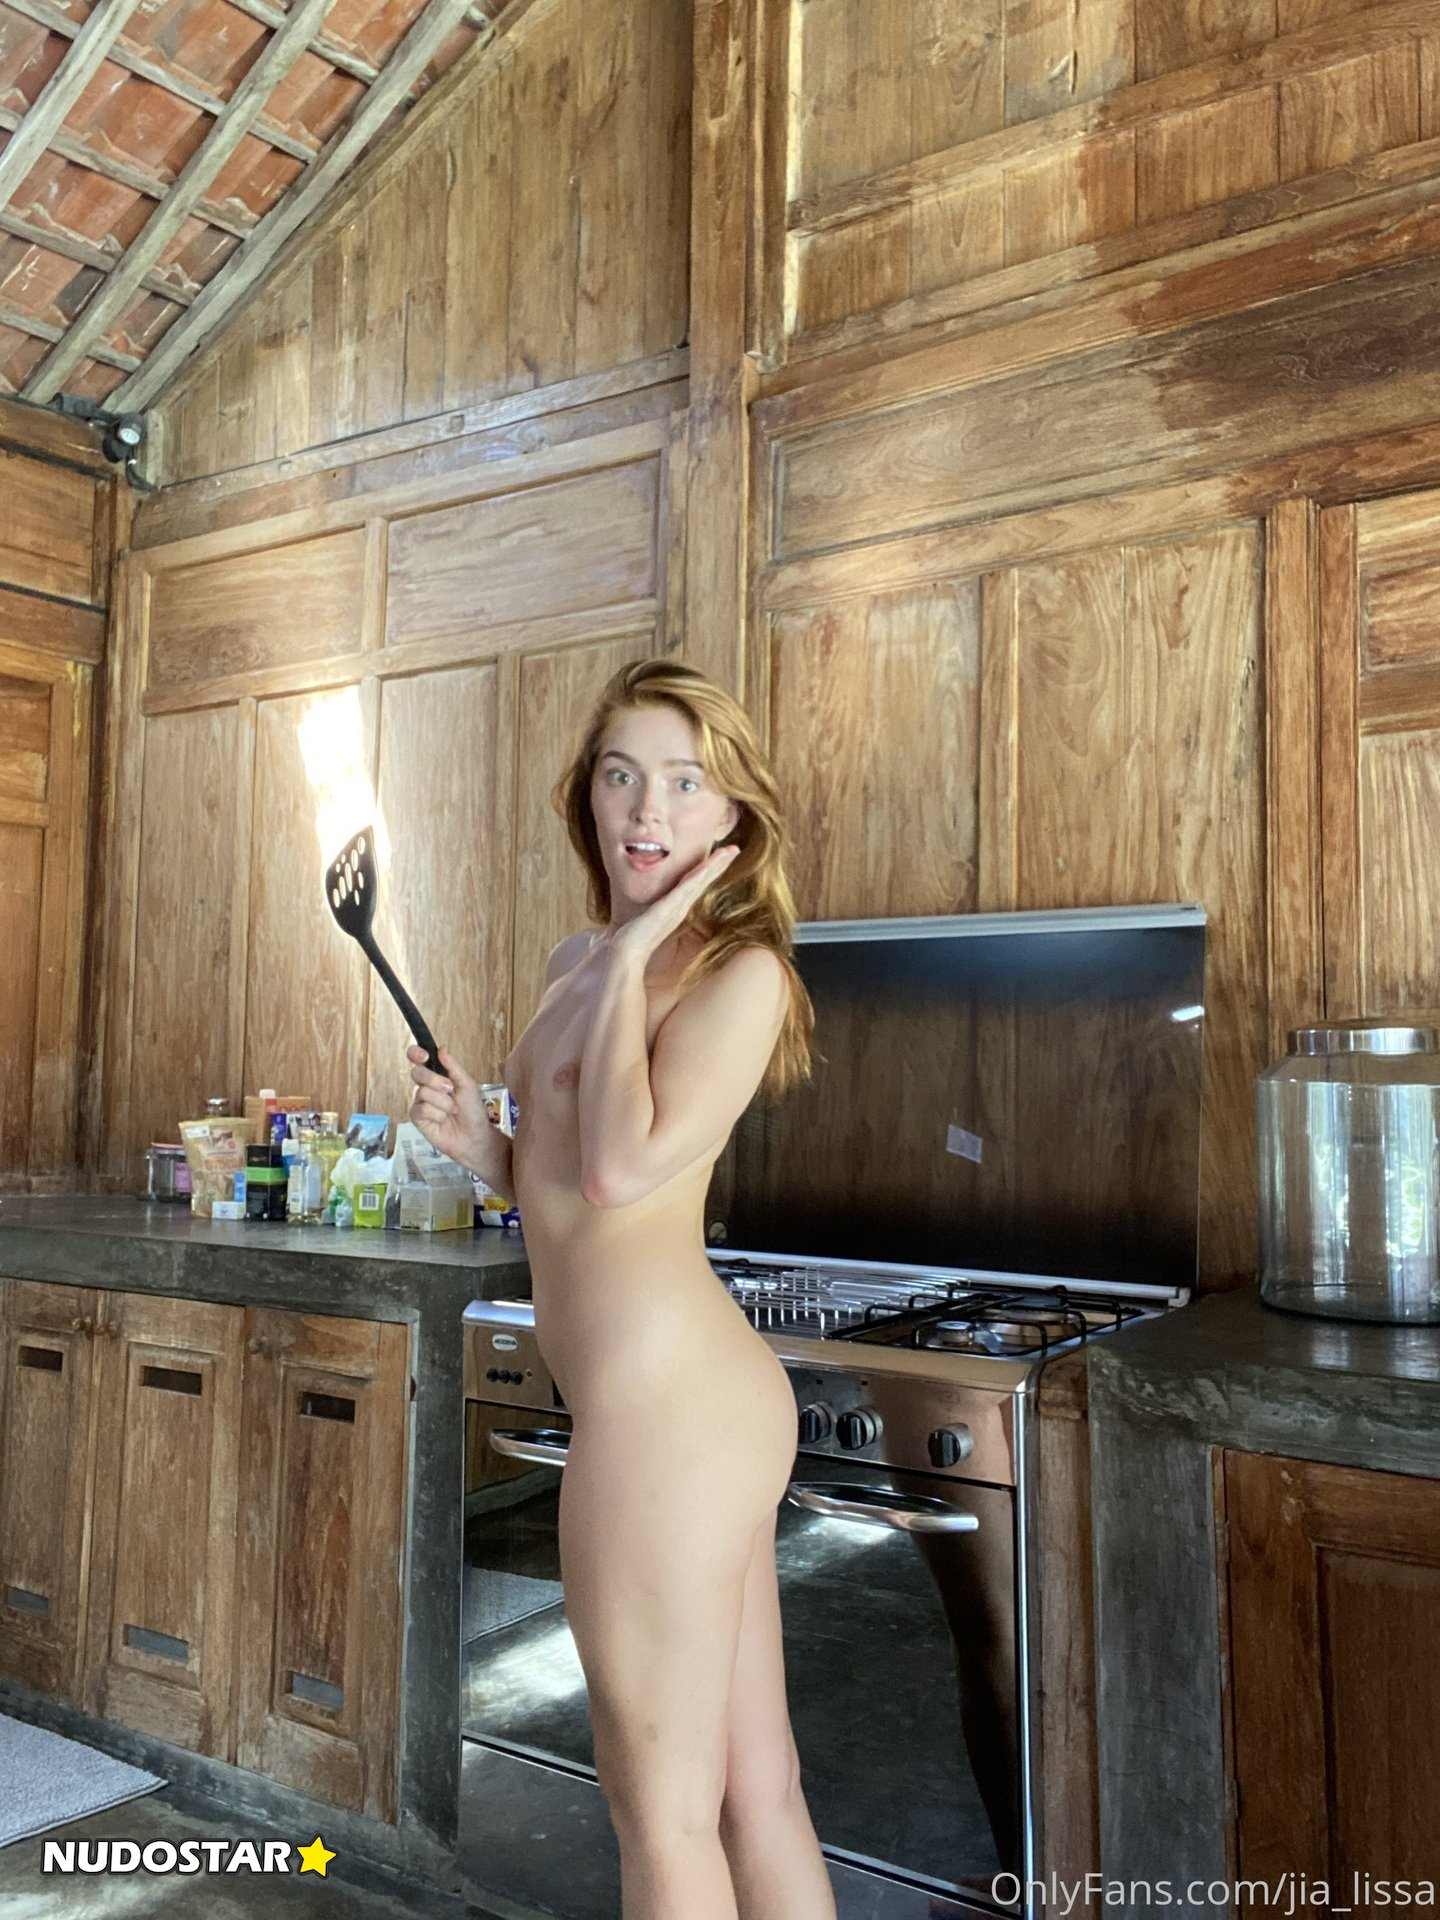 Jia Lissa OnlyFans Nude Leaks (25 Photos)